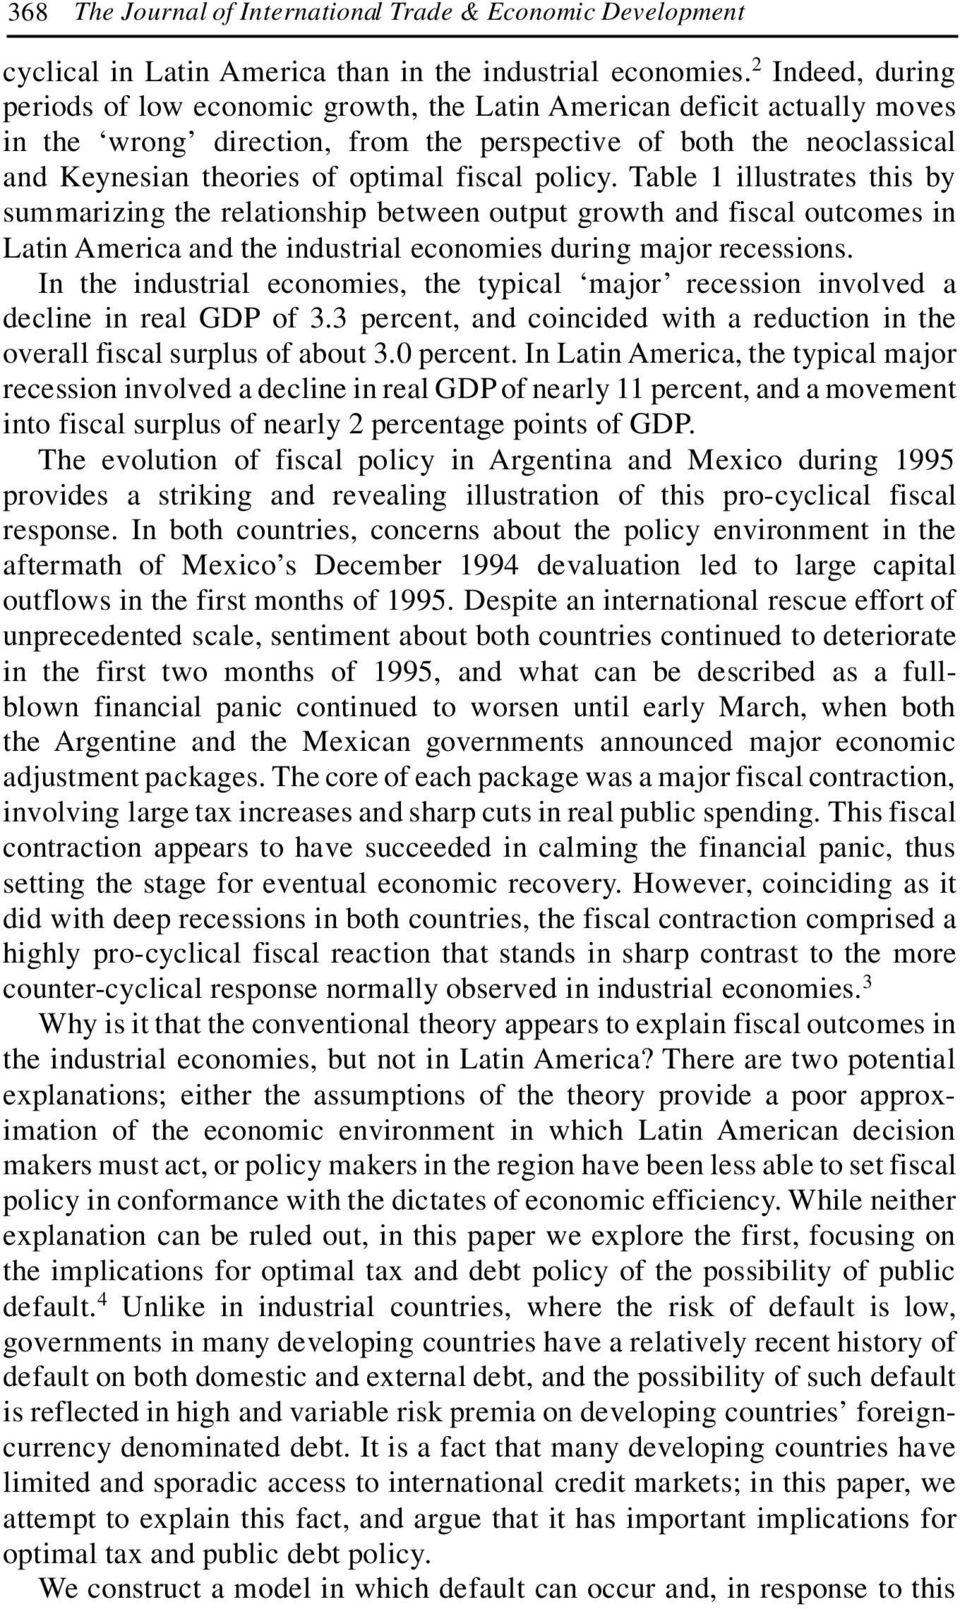 policy. Table illustrates this by summarizing the relationship between output growth and fiscal outcomes in Latin America and the industrial economies during major recessions.